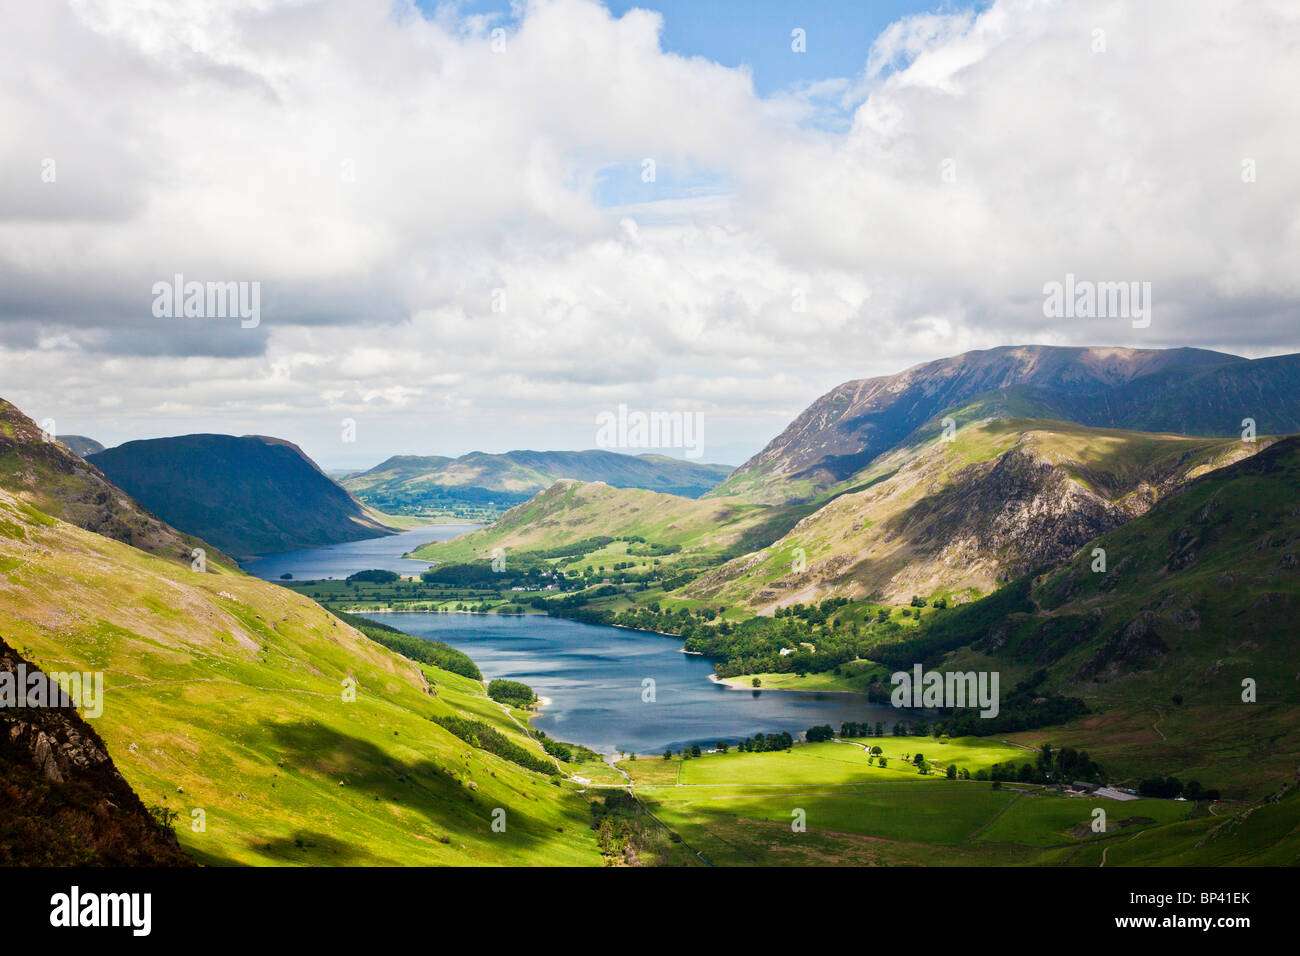 Vistas Buttermere & Crummock agua desde la ruta de un pajar, Lake District National Park, Cumbria, Inglaterra, Imagen De Stock